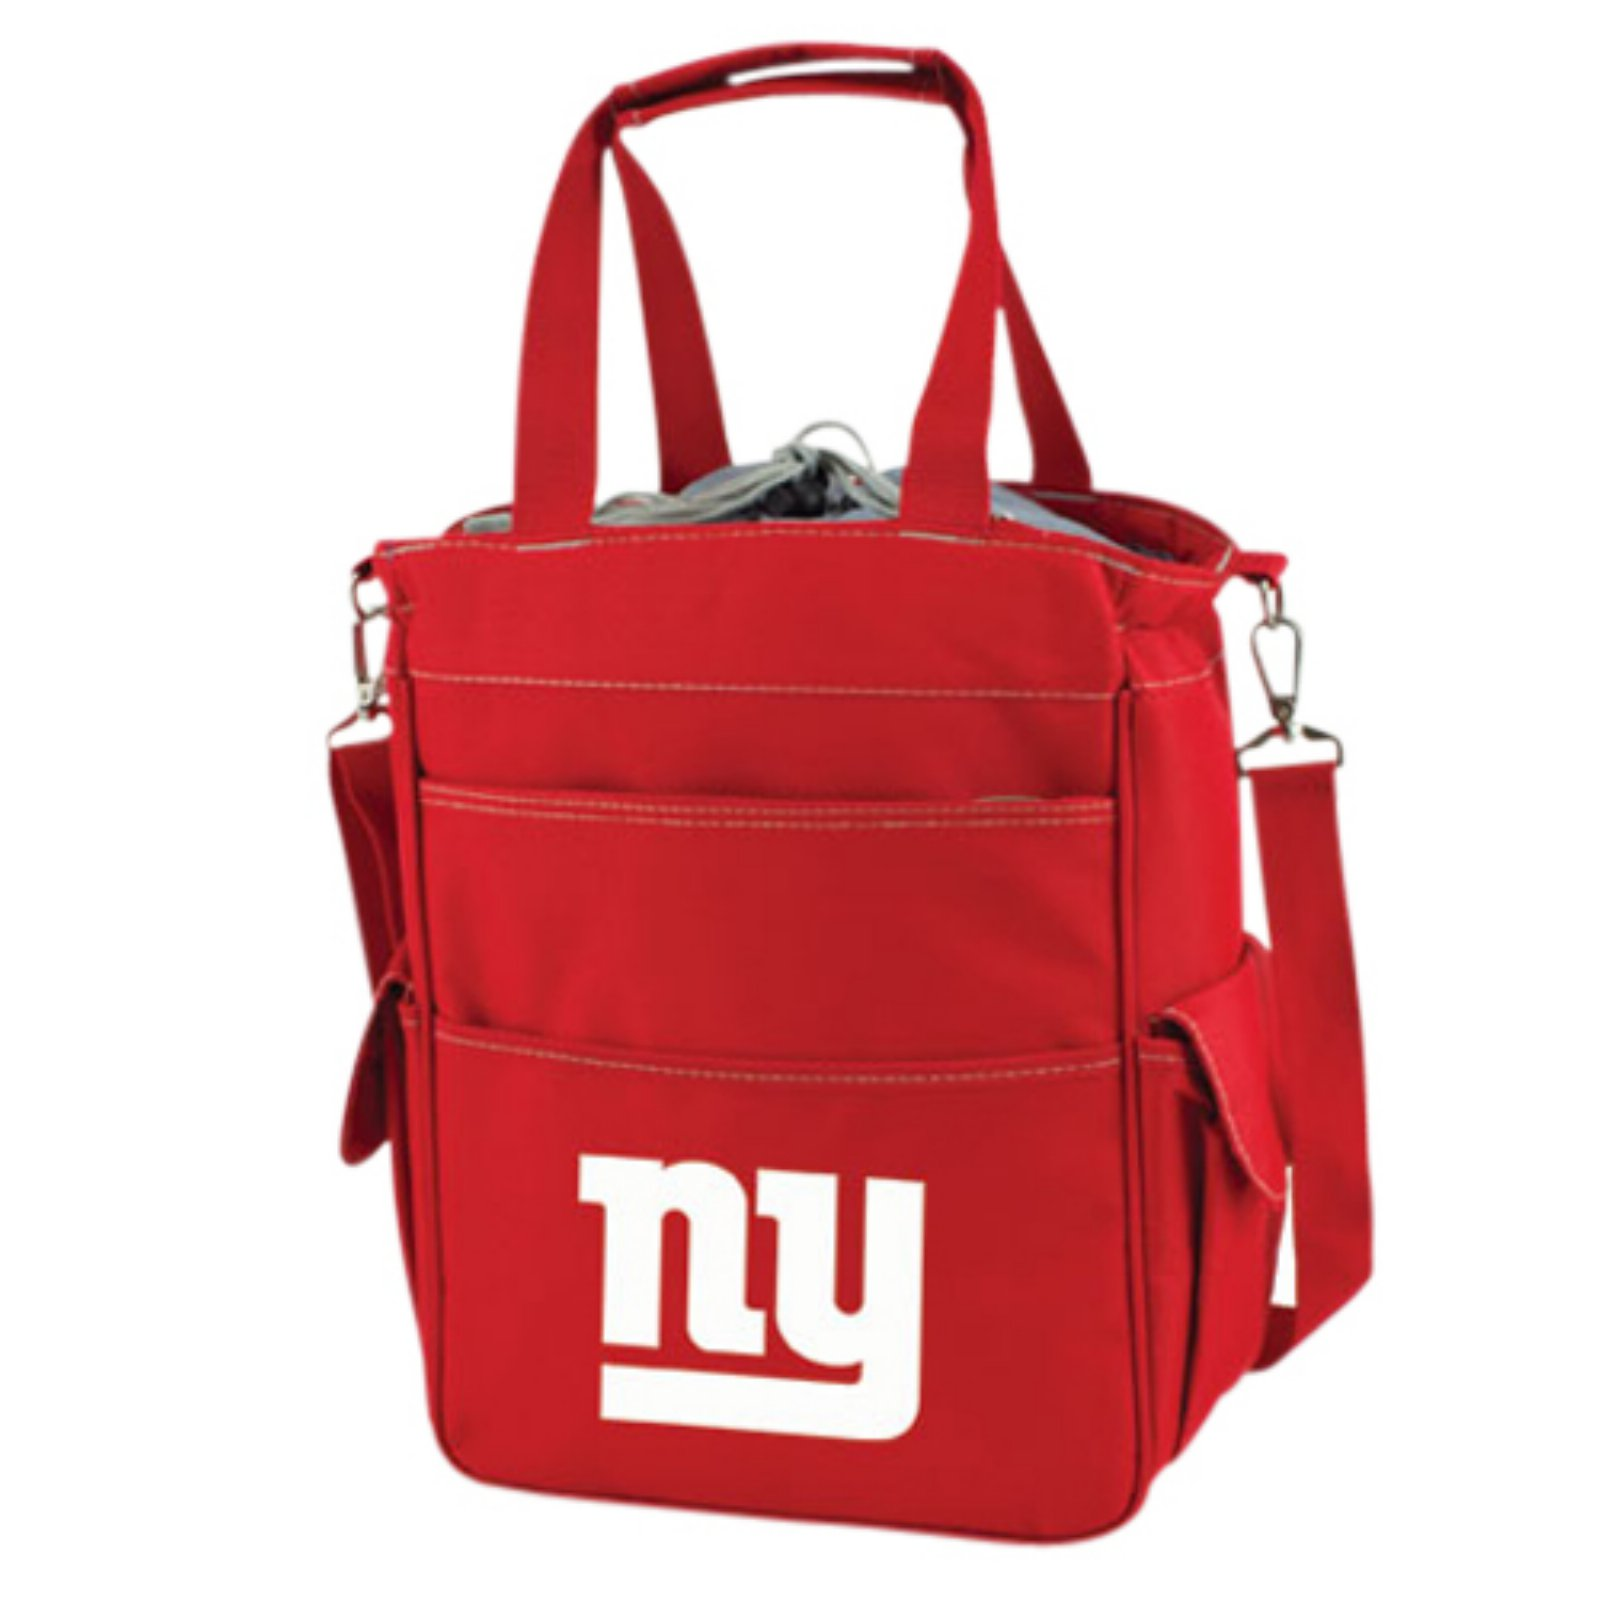 Picnic Time NFL Activo Tote